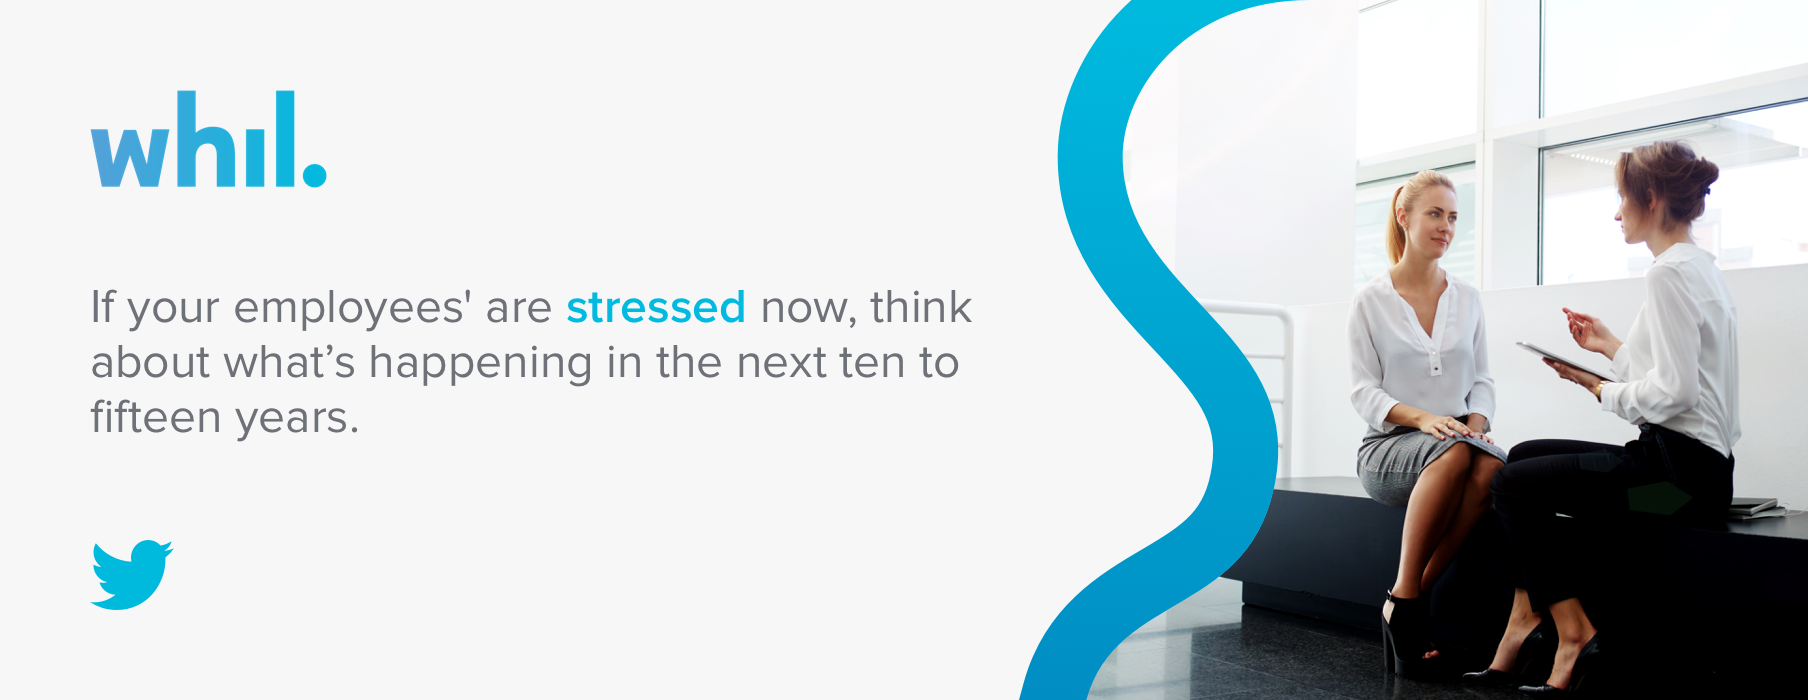 If your employees' are stressed now, think about what's happening in the next ten to fifteen years.